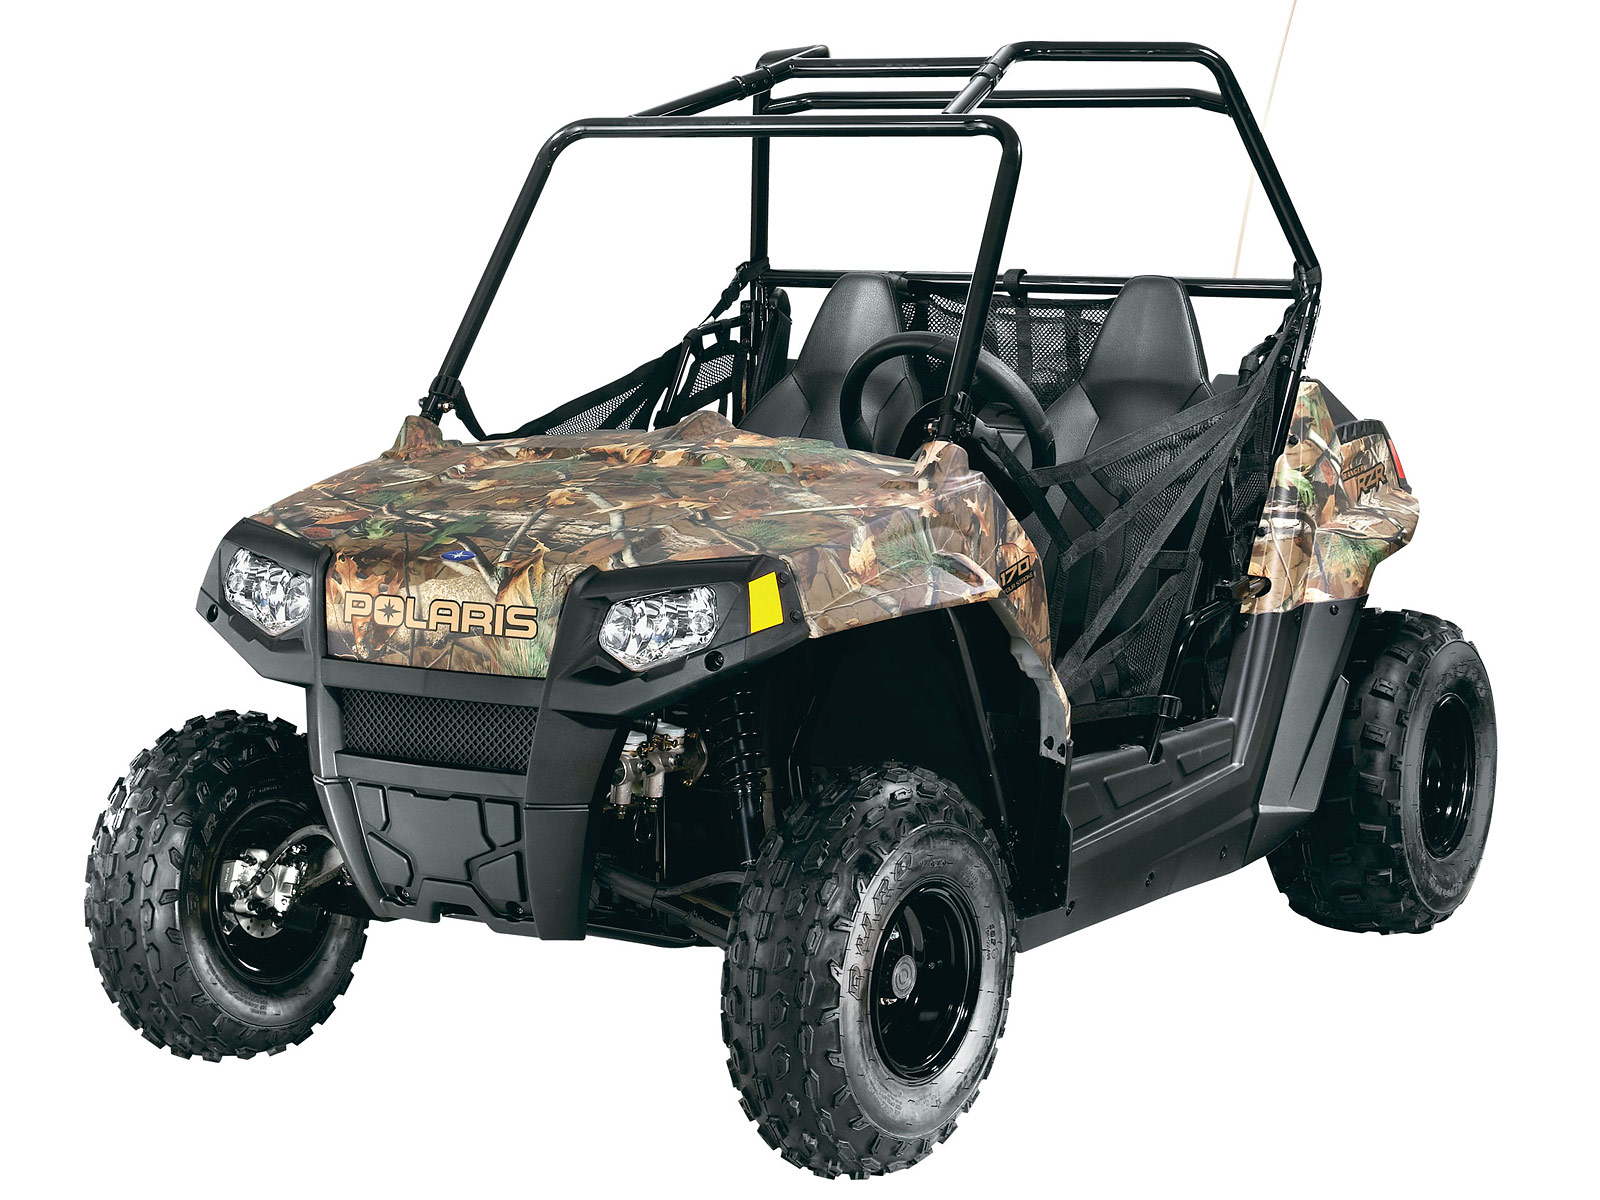 2012 polaris ranger rzr170 atv pictures lawyers information. Black Bedroom Furniture Sets. Home Design Ideas